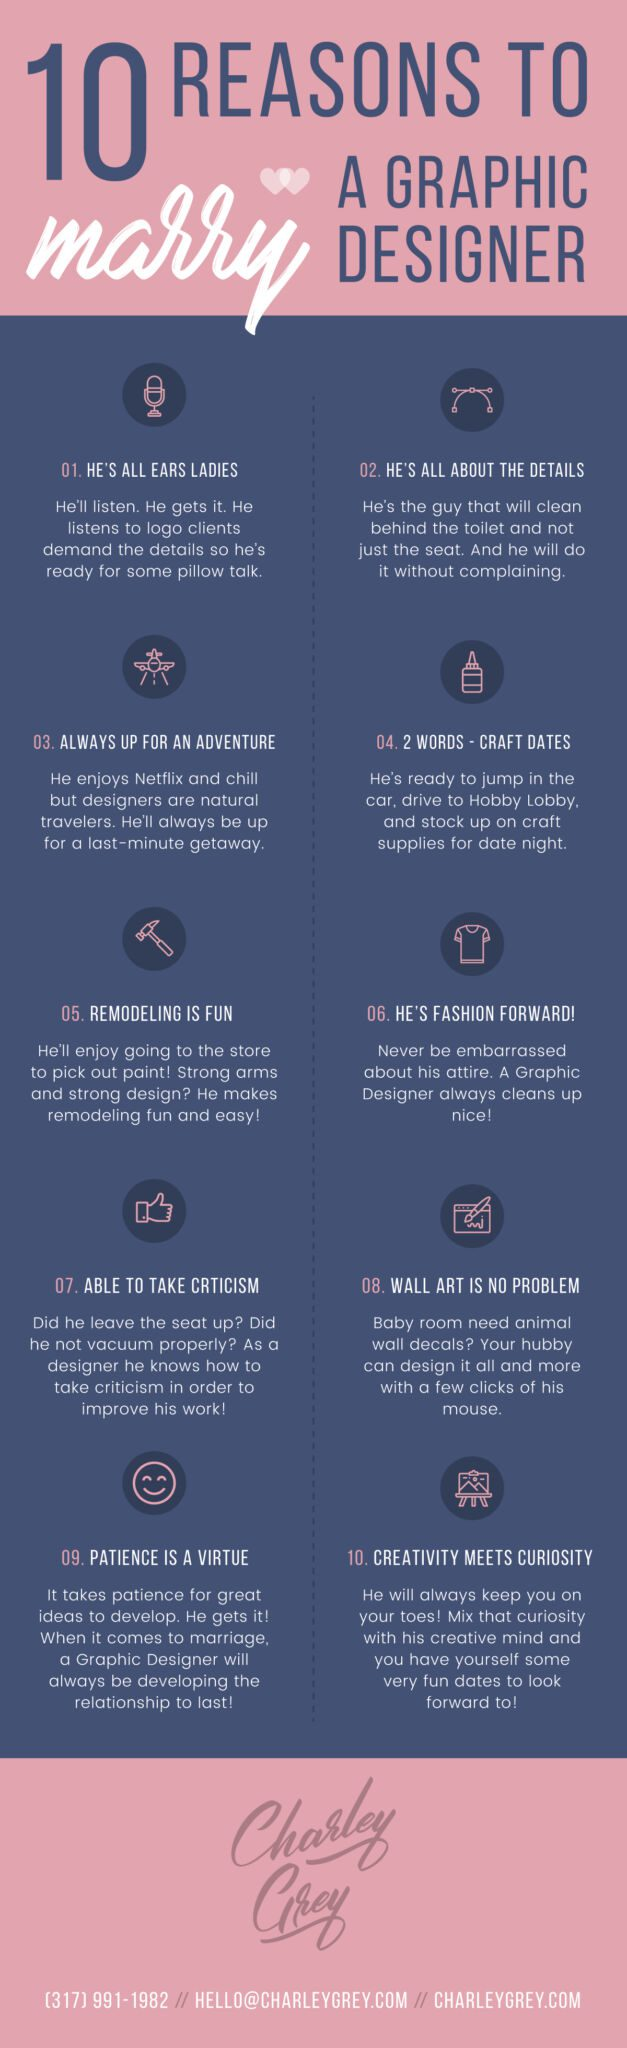 10 reasons to marry a graphic designer infographic